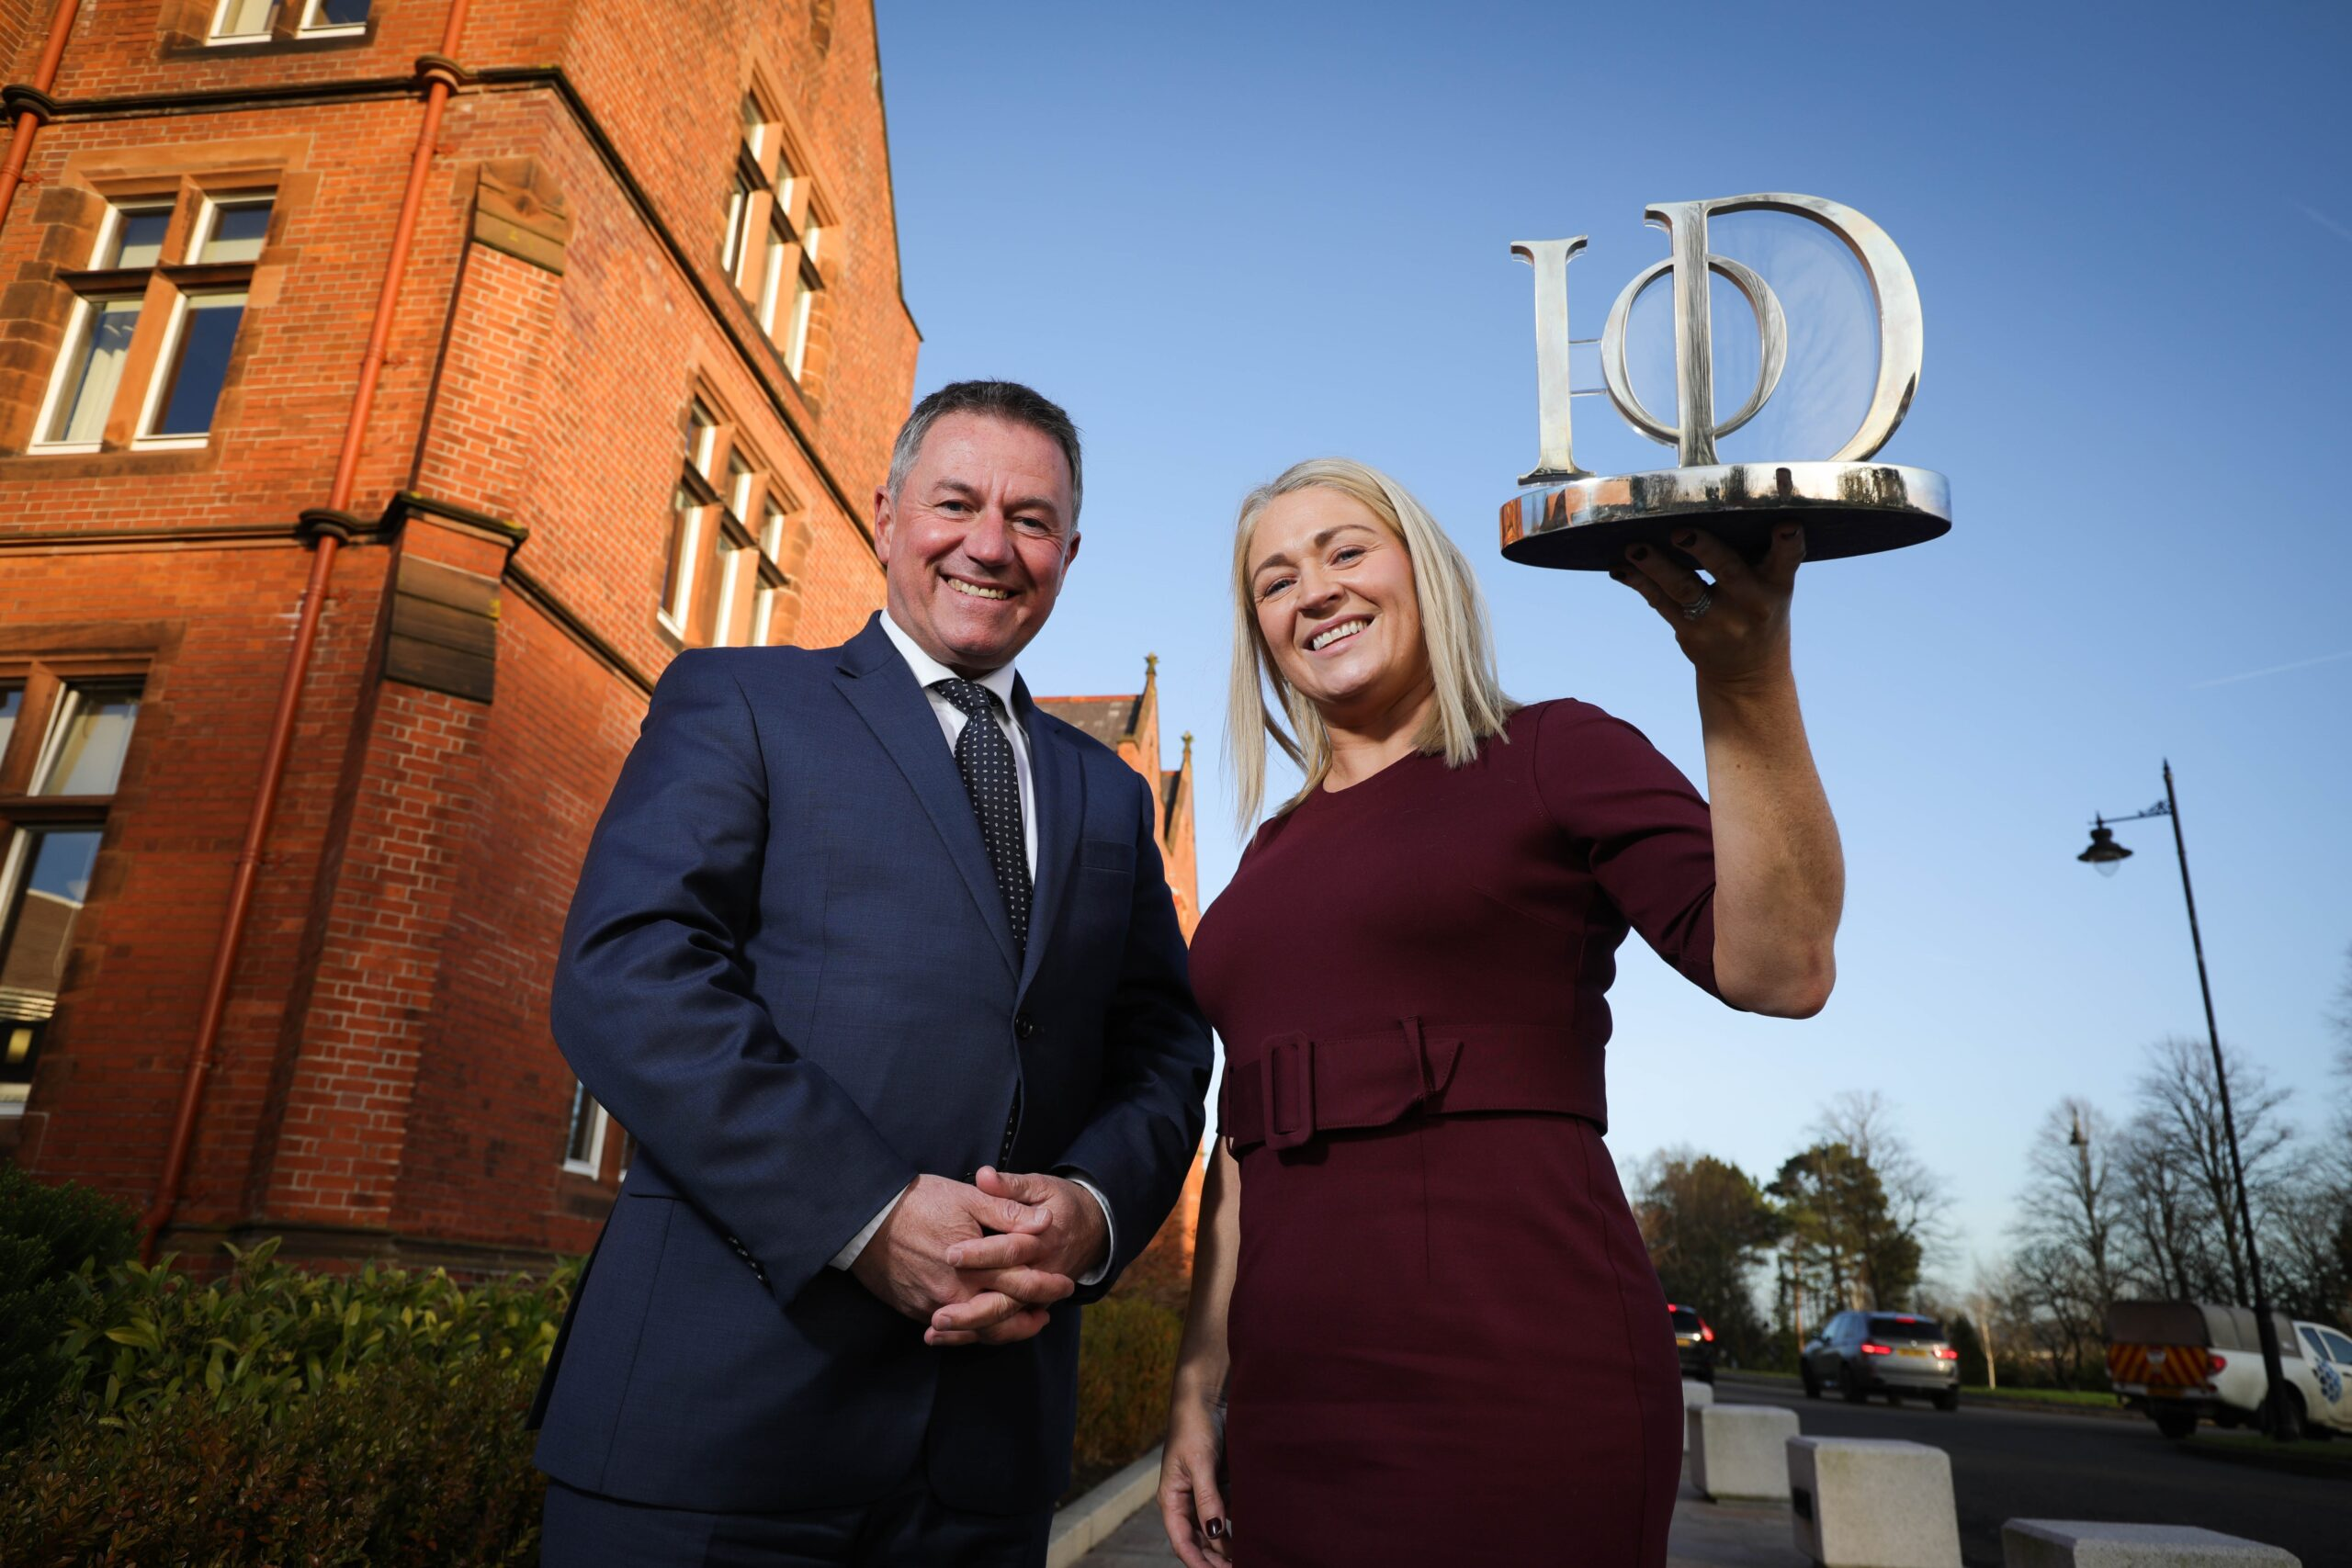 IoD Director of the Year Awards - Newry business news